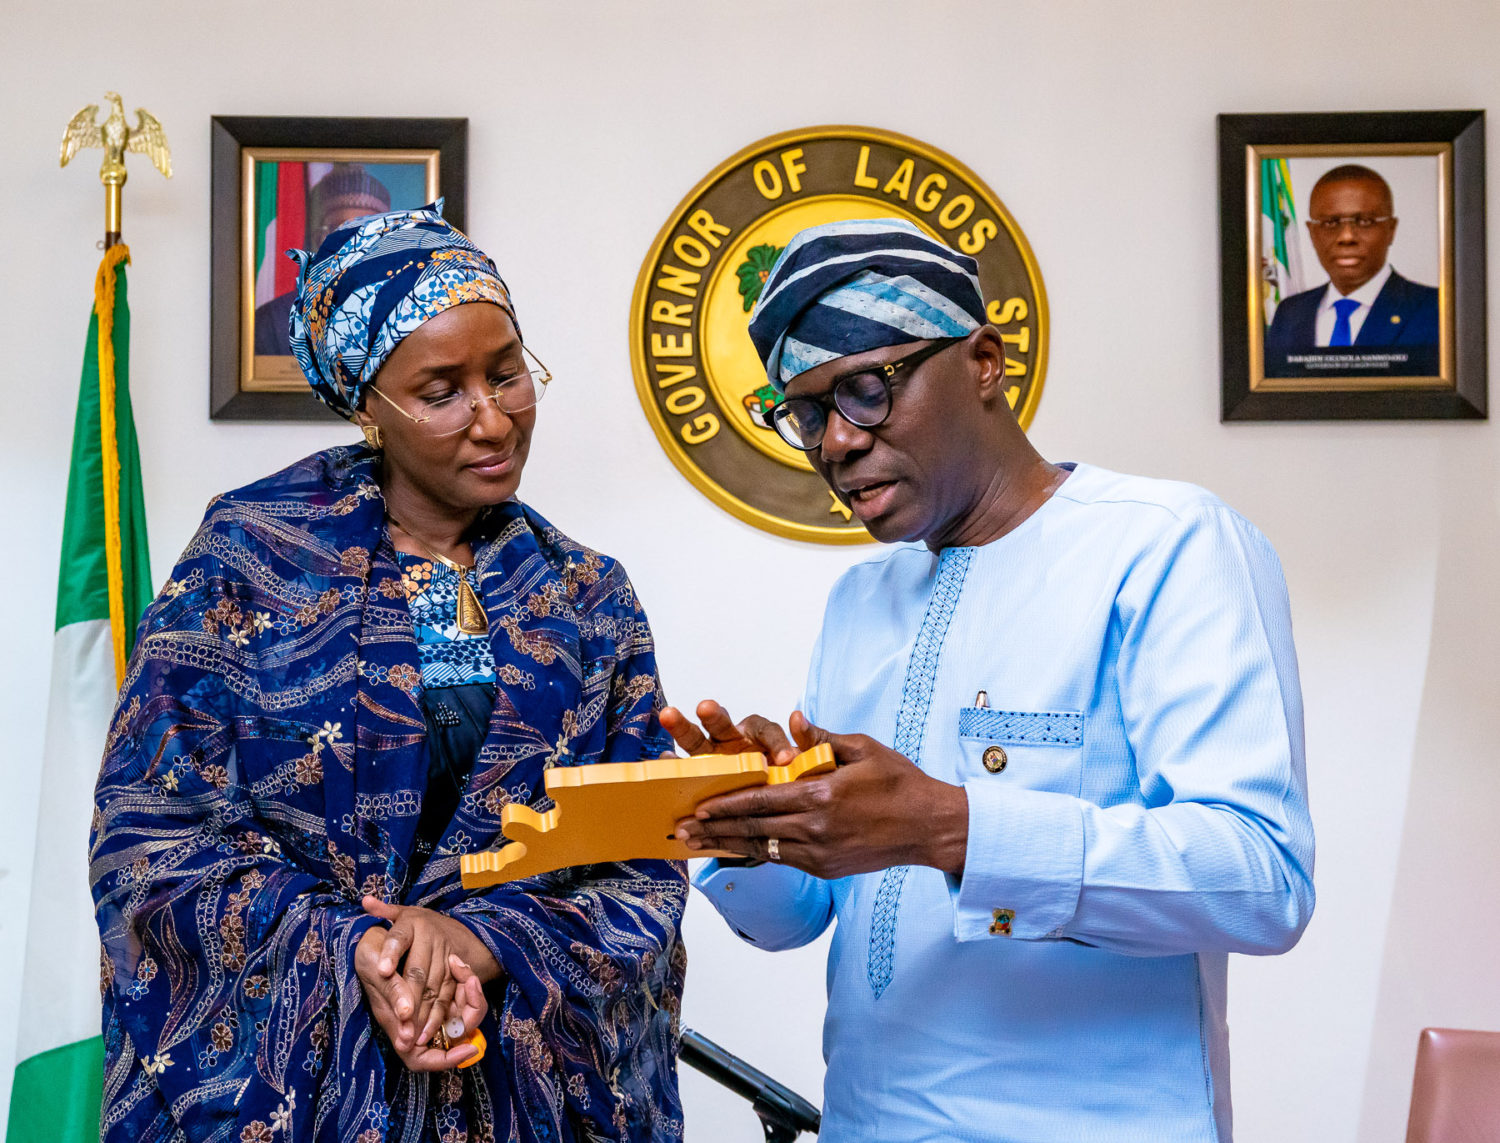 Minister of Humanitarian Affairs, Disaster Management and Social Development, Hajiya Sadiya Umar Farouq (left) being presented with a plaque by Lagos State Governor, Mr. Babajide Sanwo-Olu during a commiseration visit over the recent Abule-AdoSoba explosions at Lagos House, Marina, on Wednesday, March 18, 2020.